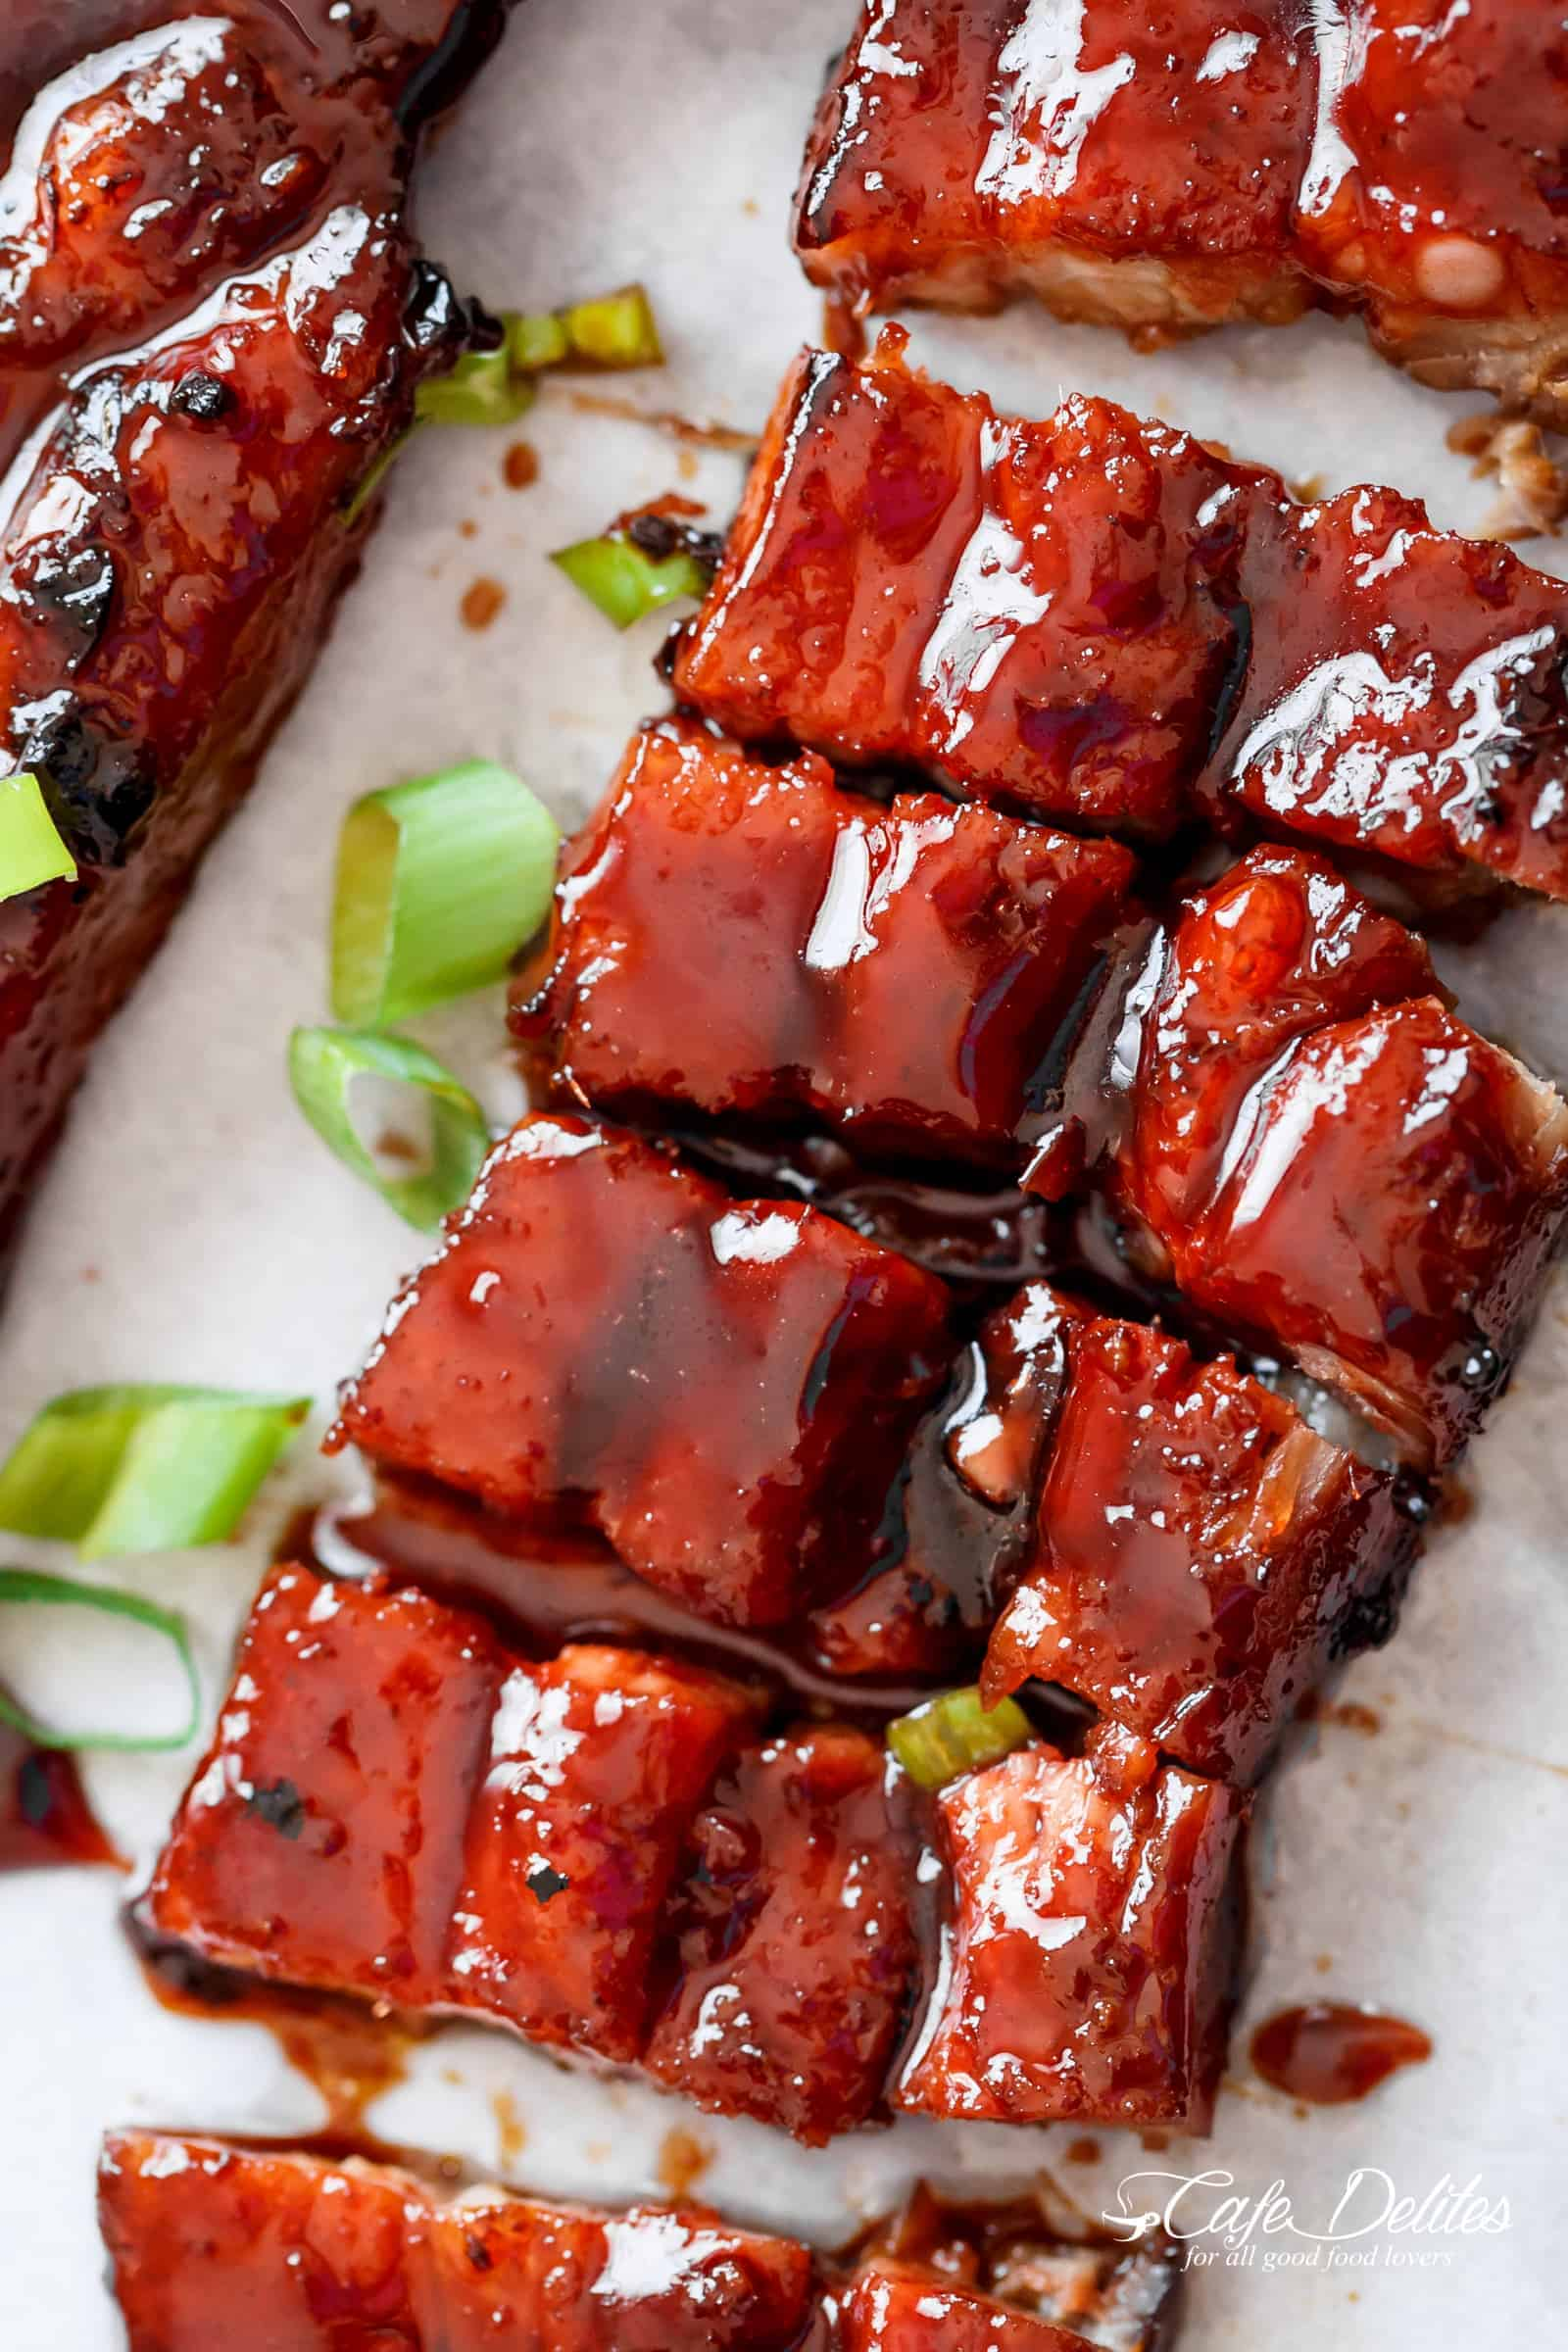 Sticky Chinese BBQ Pork Belly Ribs (Char Siu)